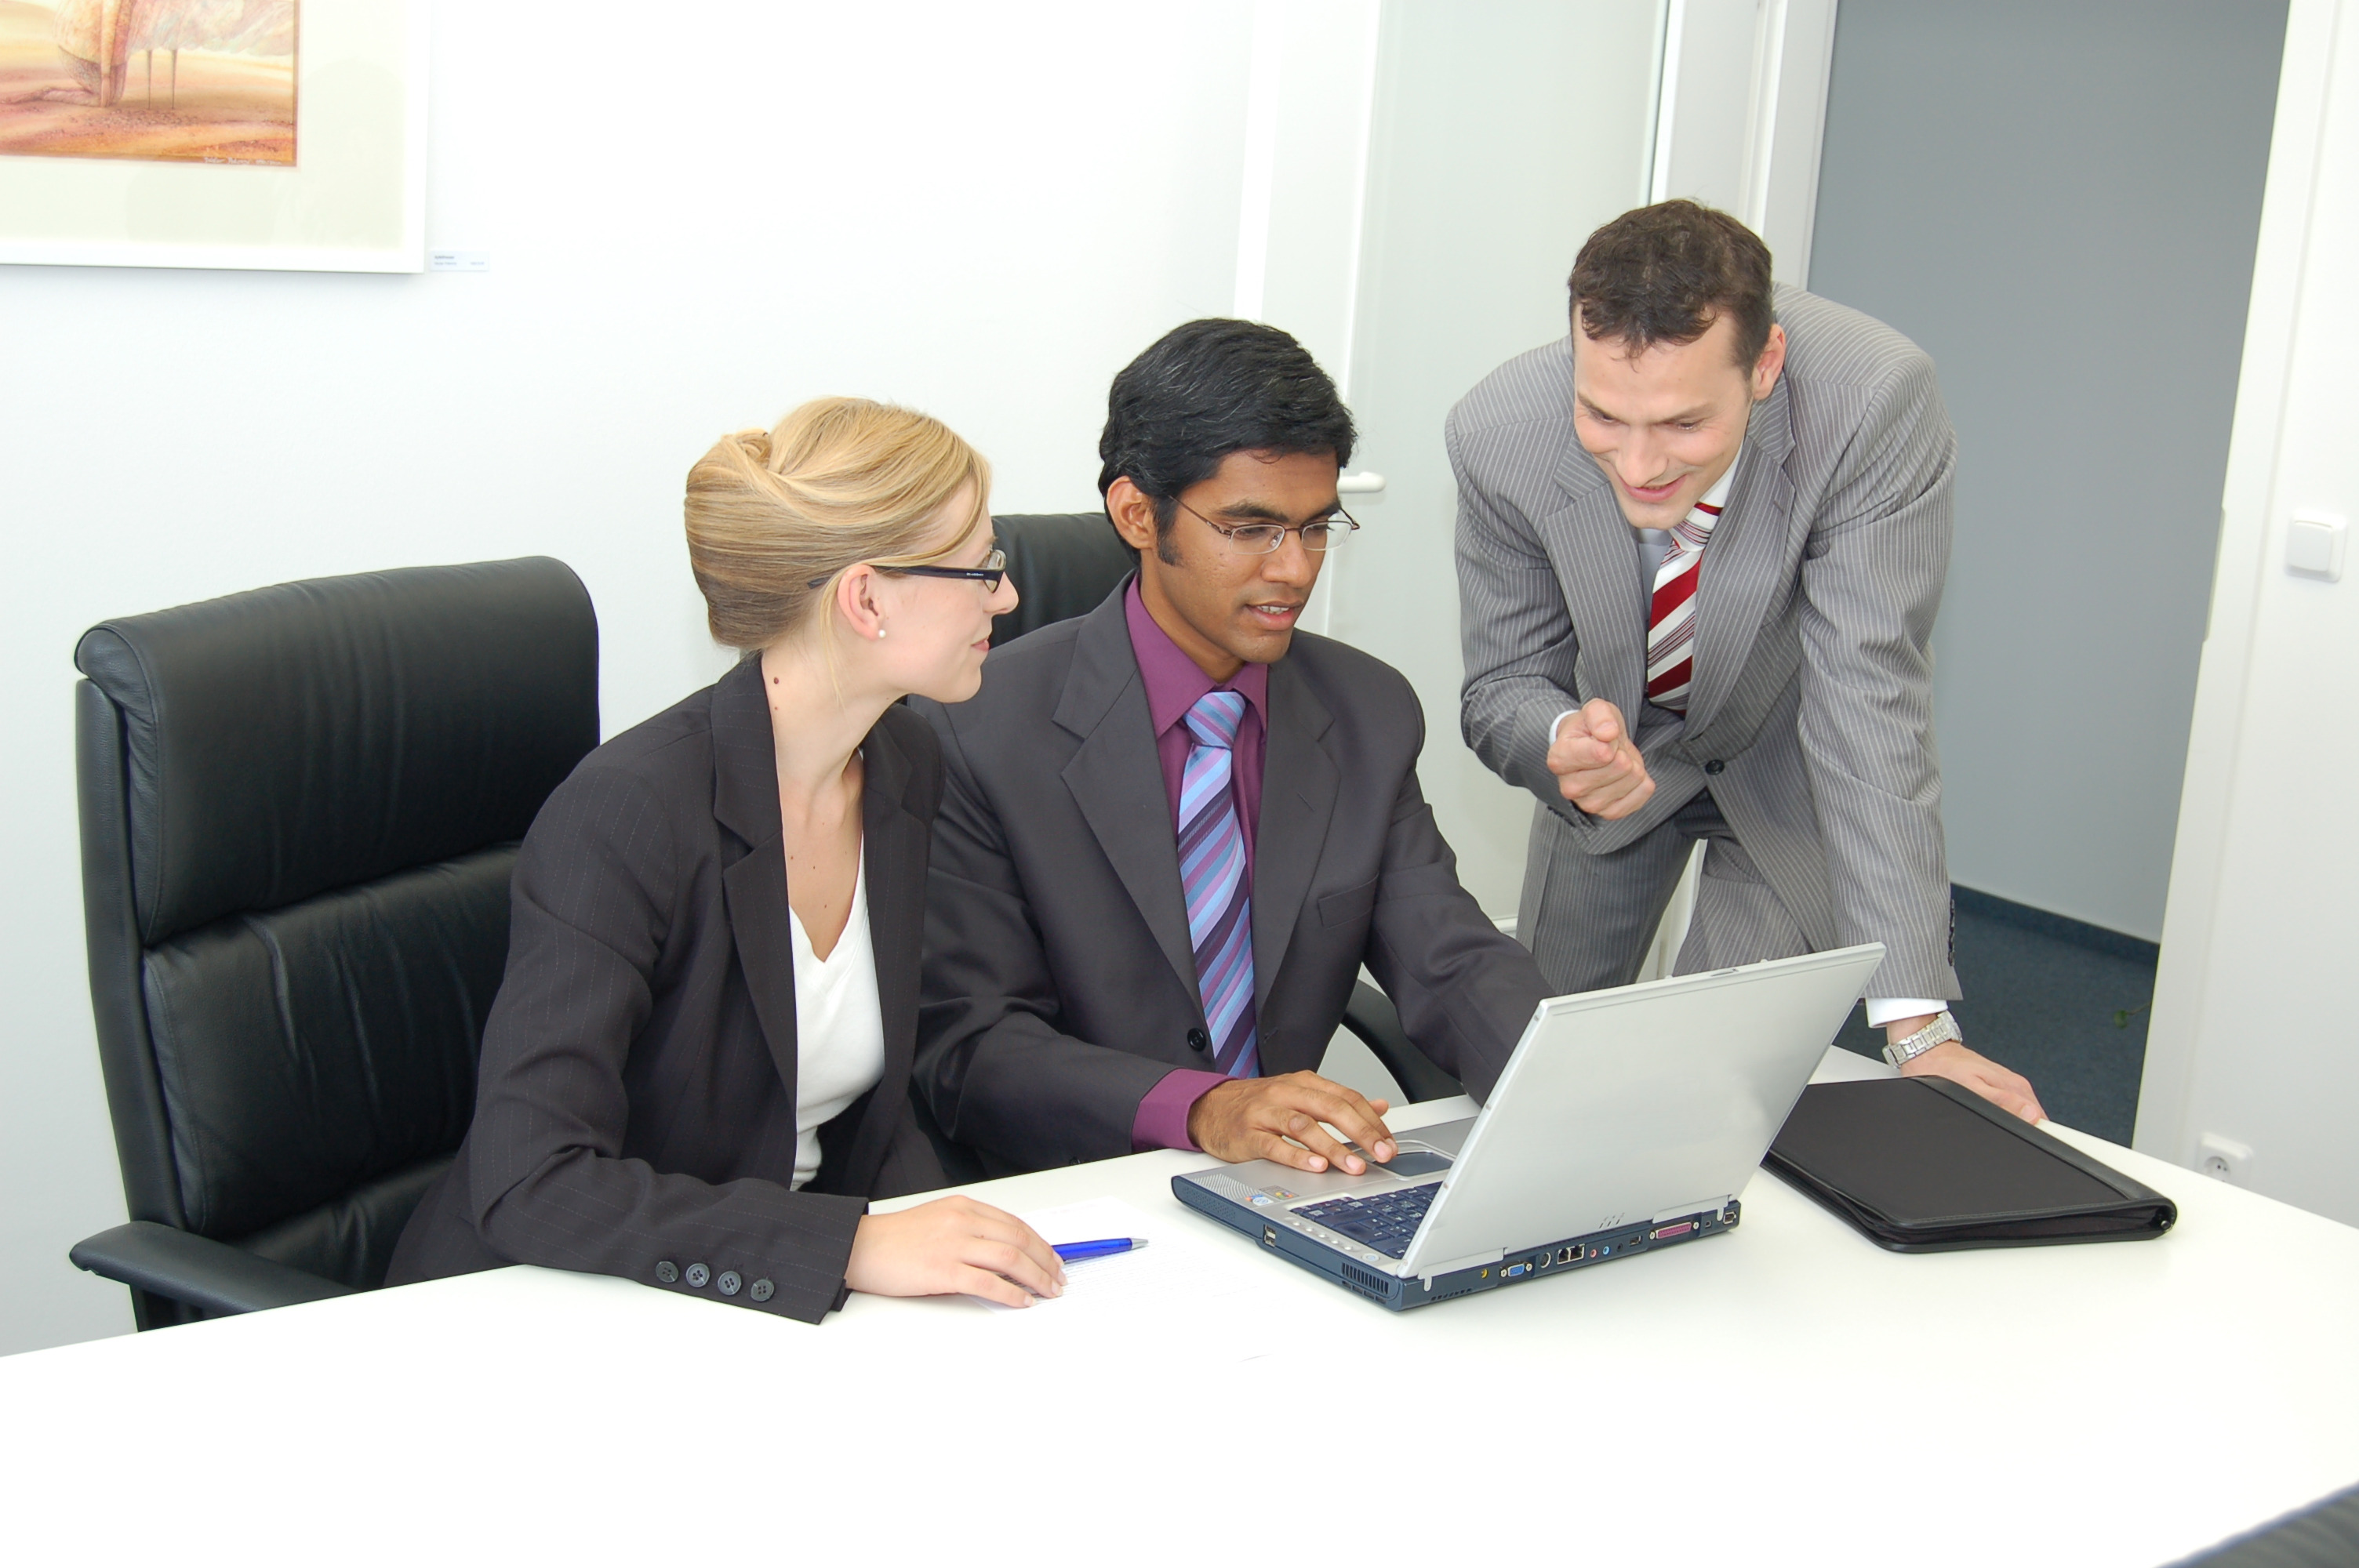 how to manage difficult people at work